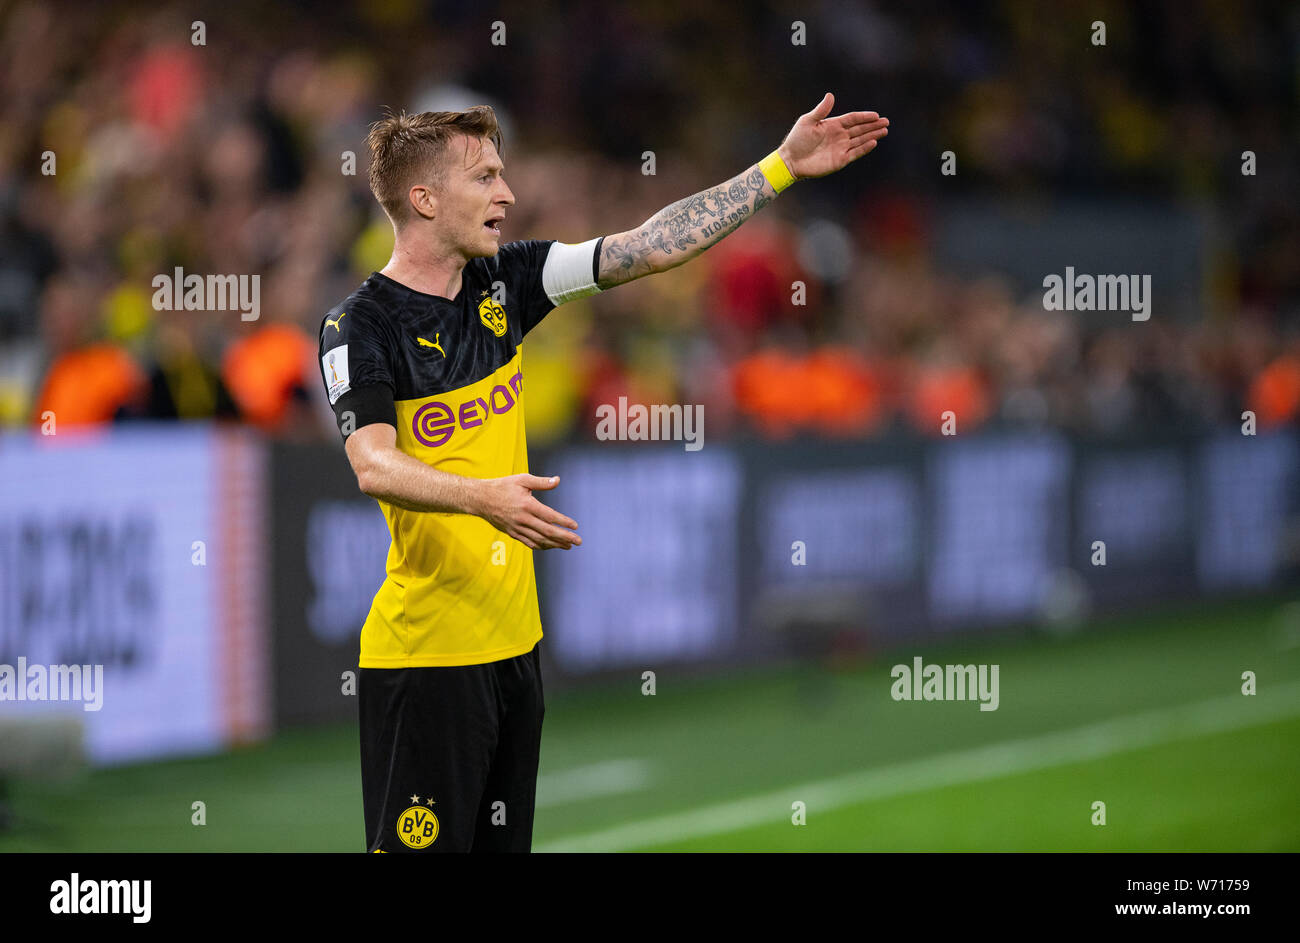 03 August 2019, North Rhine-Westphalia, Dortmund: Soccer: DFL Supercup, Borussia Dortmund - Bayern Munich in Signal Iduna Park. Dortmund's Marco Reus gives instructions to his teammates. Photo: Guido Kirchner/dpa - IMPORTANT NOTE: In accordance with the requirements of the DFL Deutsche Fußball Liga or the DFB Deutscher Fußball-Bund, it is prohibited to use or have used photographs taken in the stadium and/or the match in the form of sequence images and/or video-like photo sequences. Stock Photo